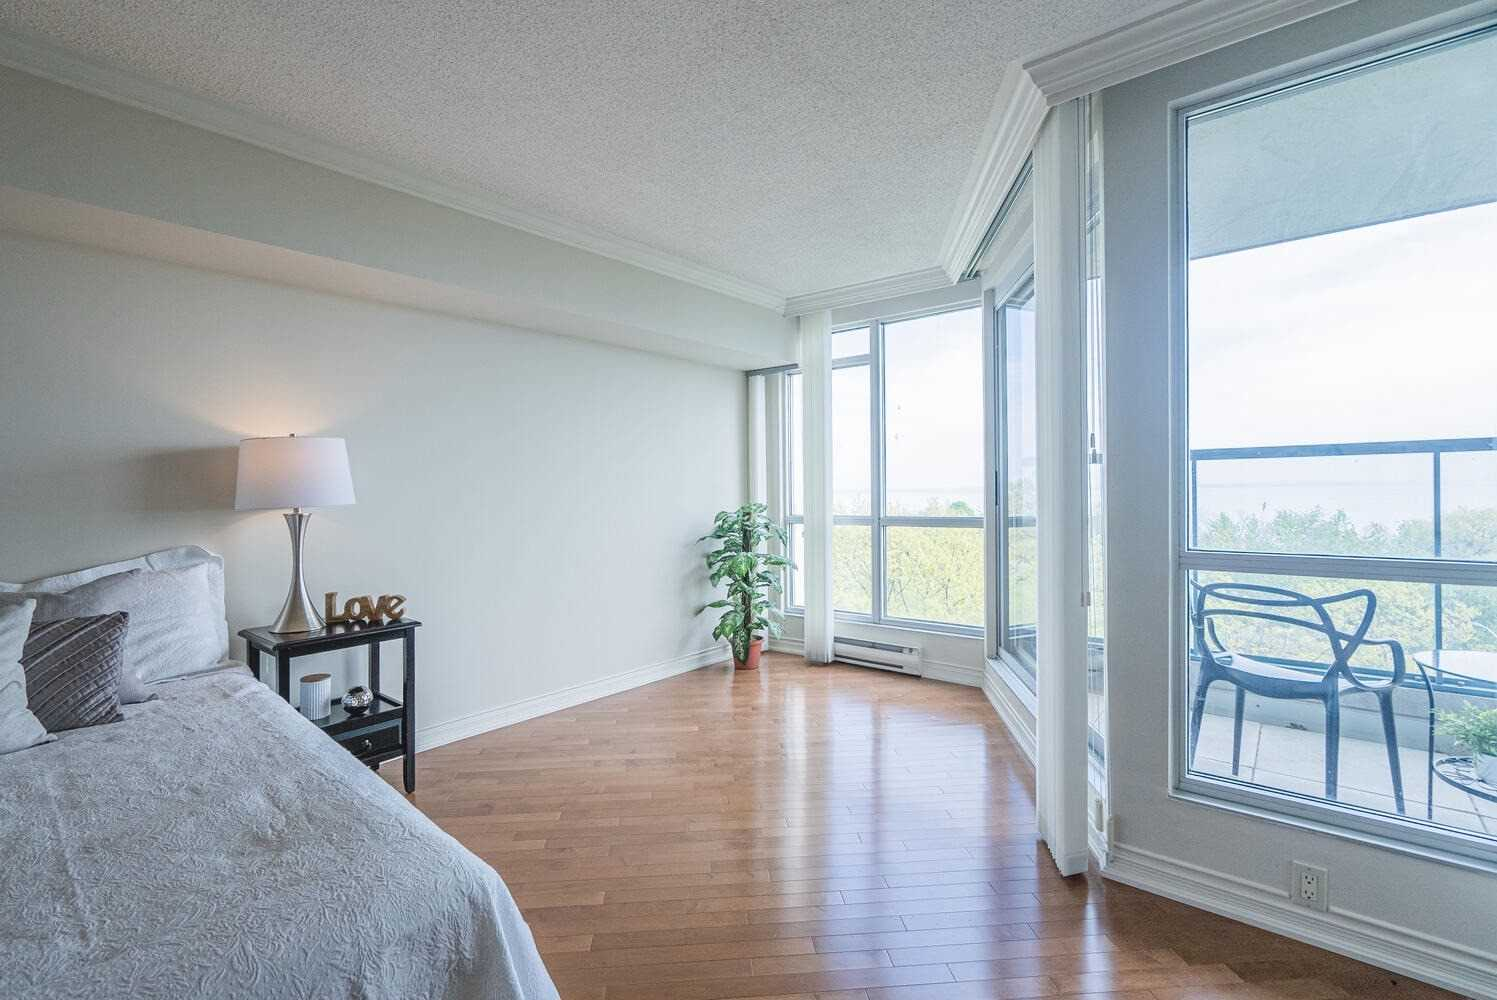 Image 11 of 38 showing inside of 2 Bedroom Condo Apt Apartment for Sale at 70 Cumberland Lane Unit# 503, Ajax L1S7K4